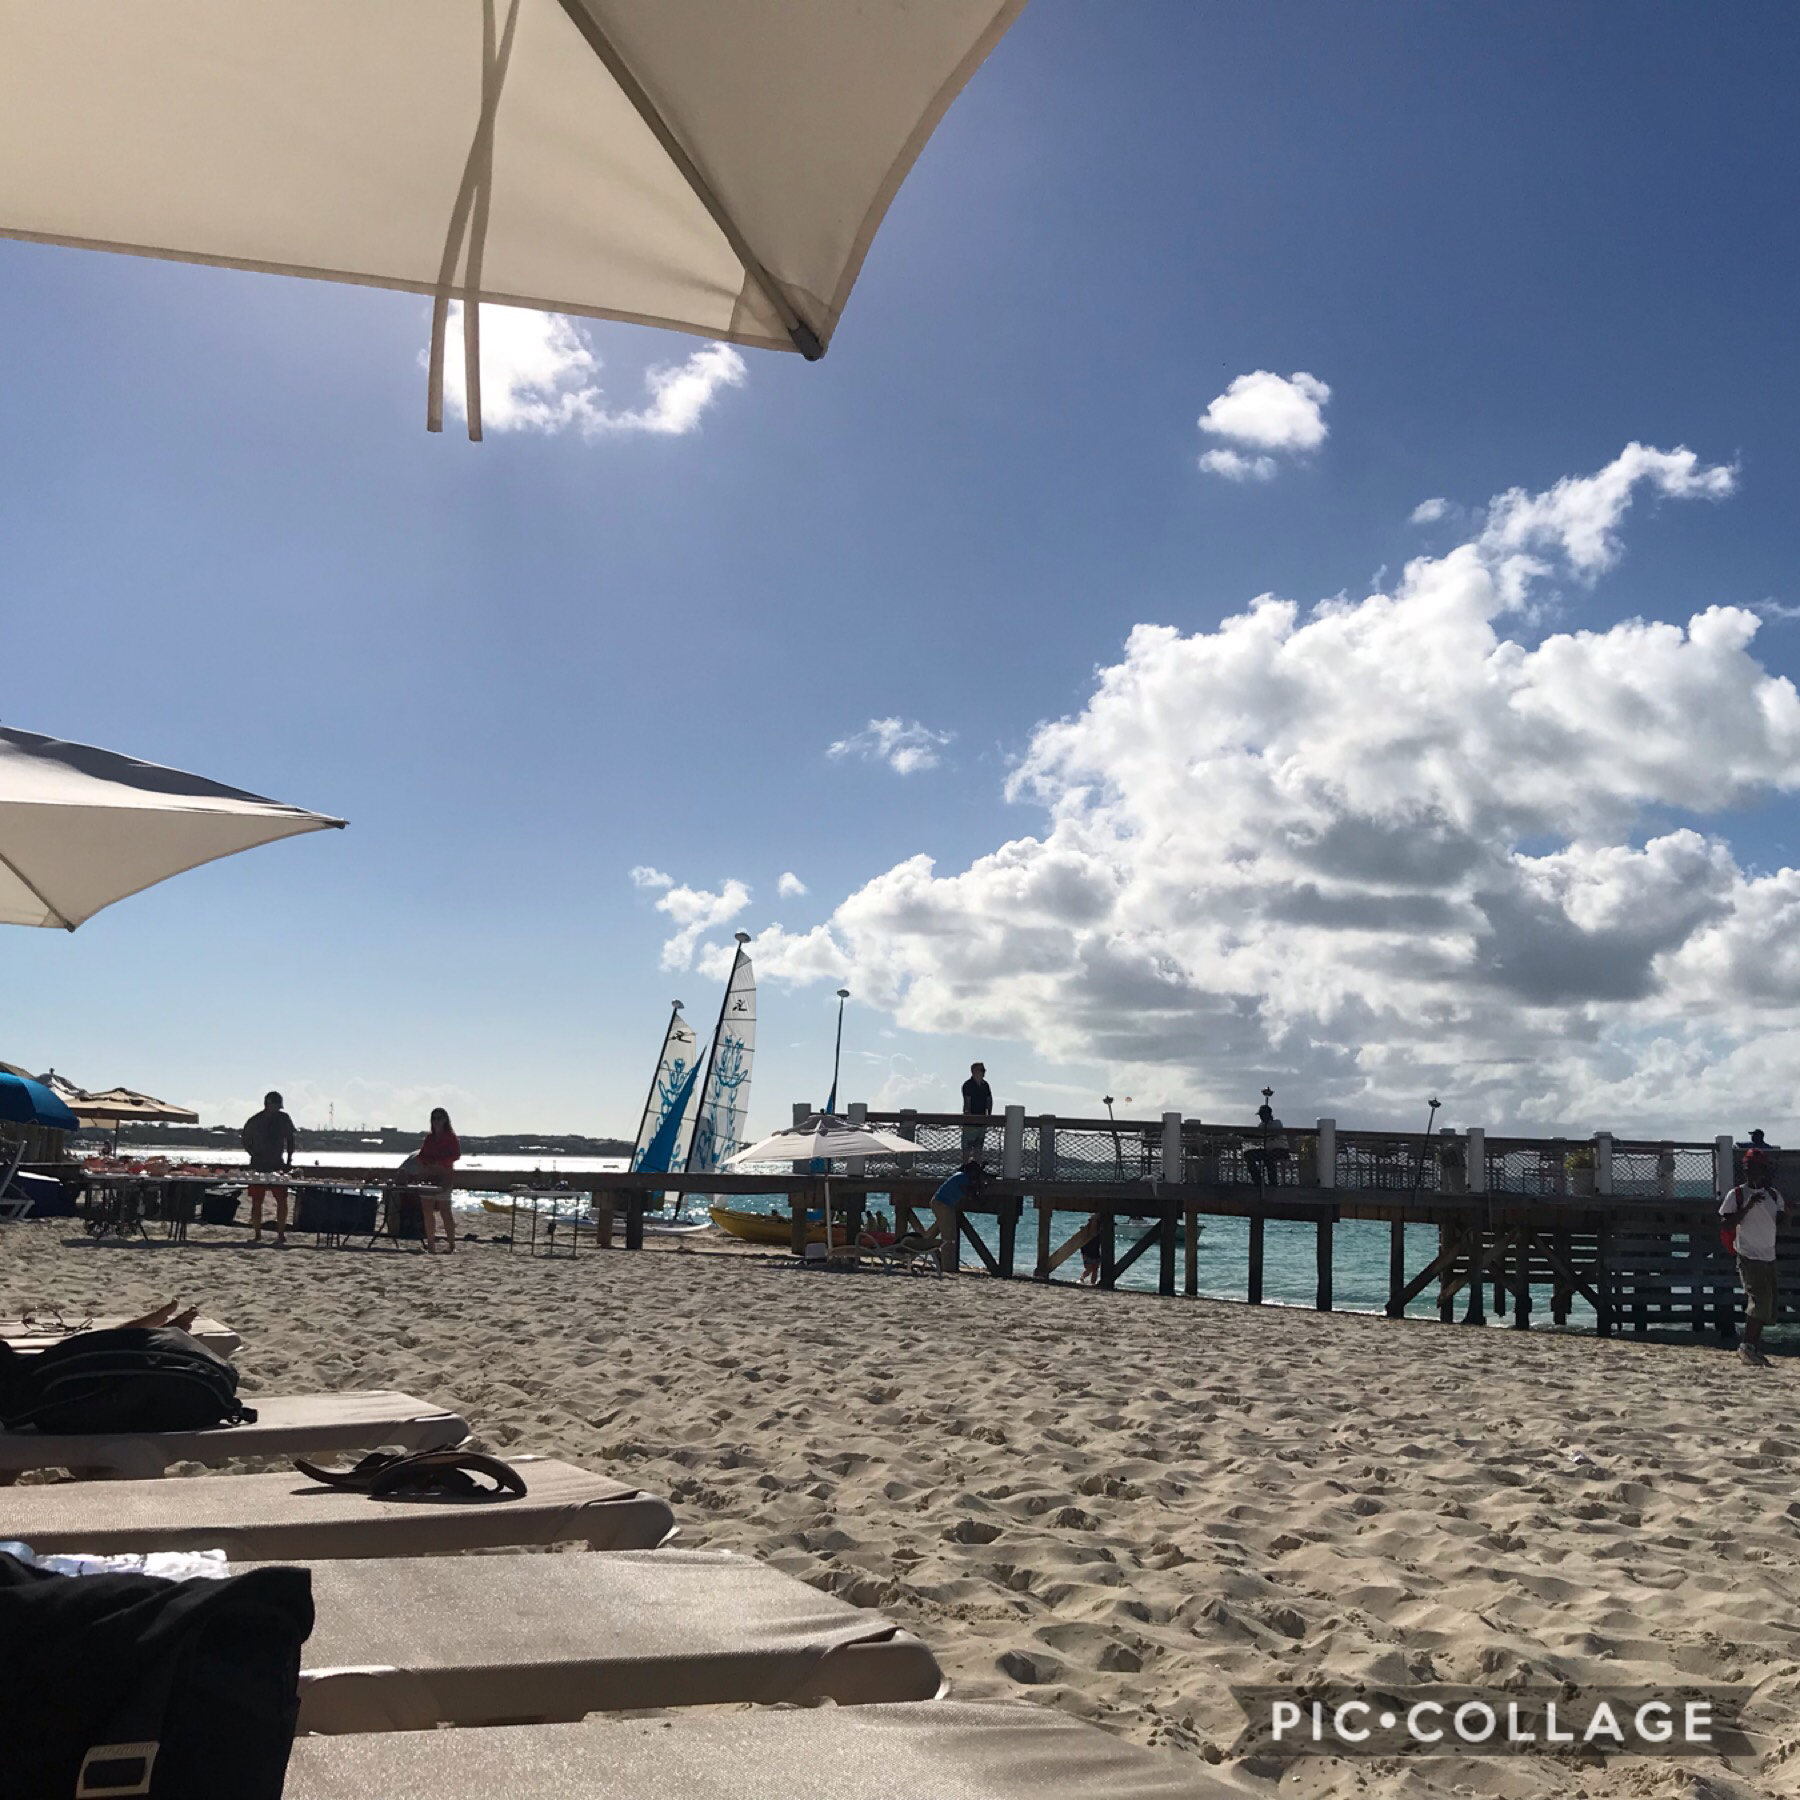 Yeah so we finally got here but low key kinda dissappointed. Been here twice and it was FLAWLESS. Now the food is meh, all the restaurants r full, the beach is kinda dirty. Ehhh im lowkey sad